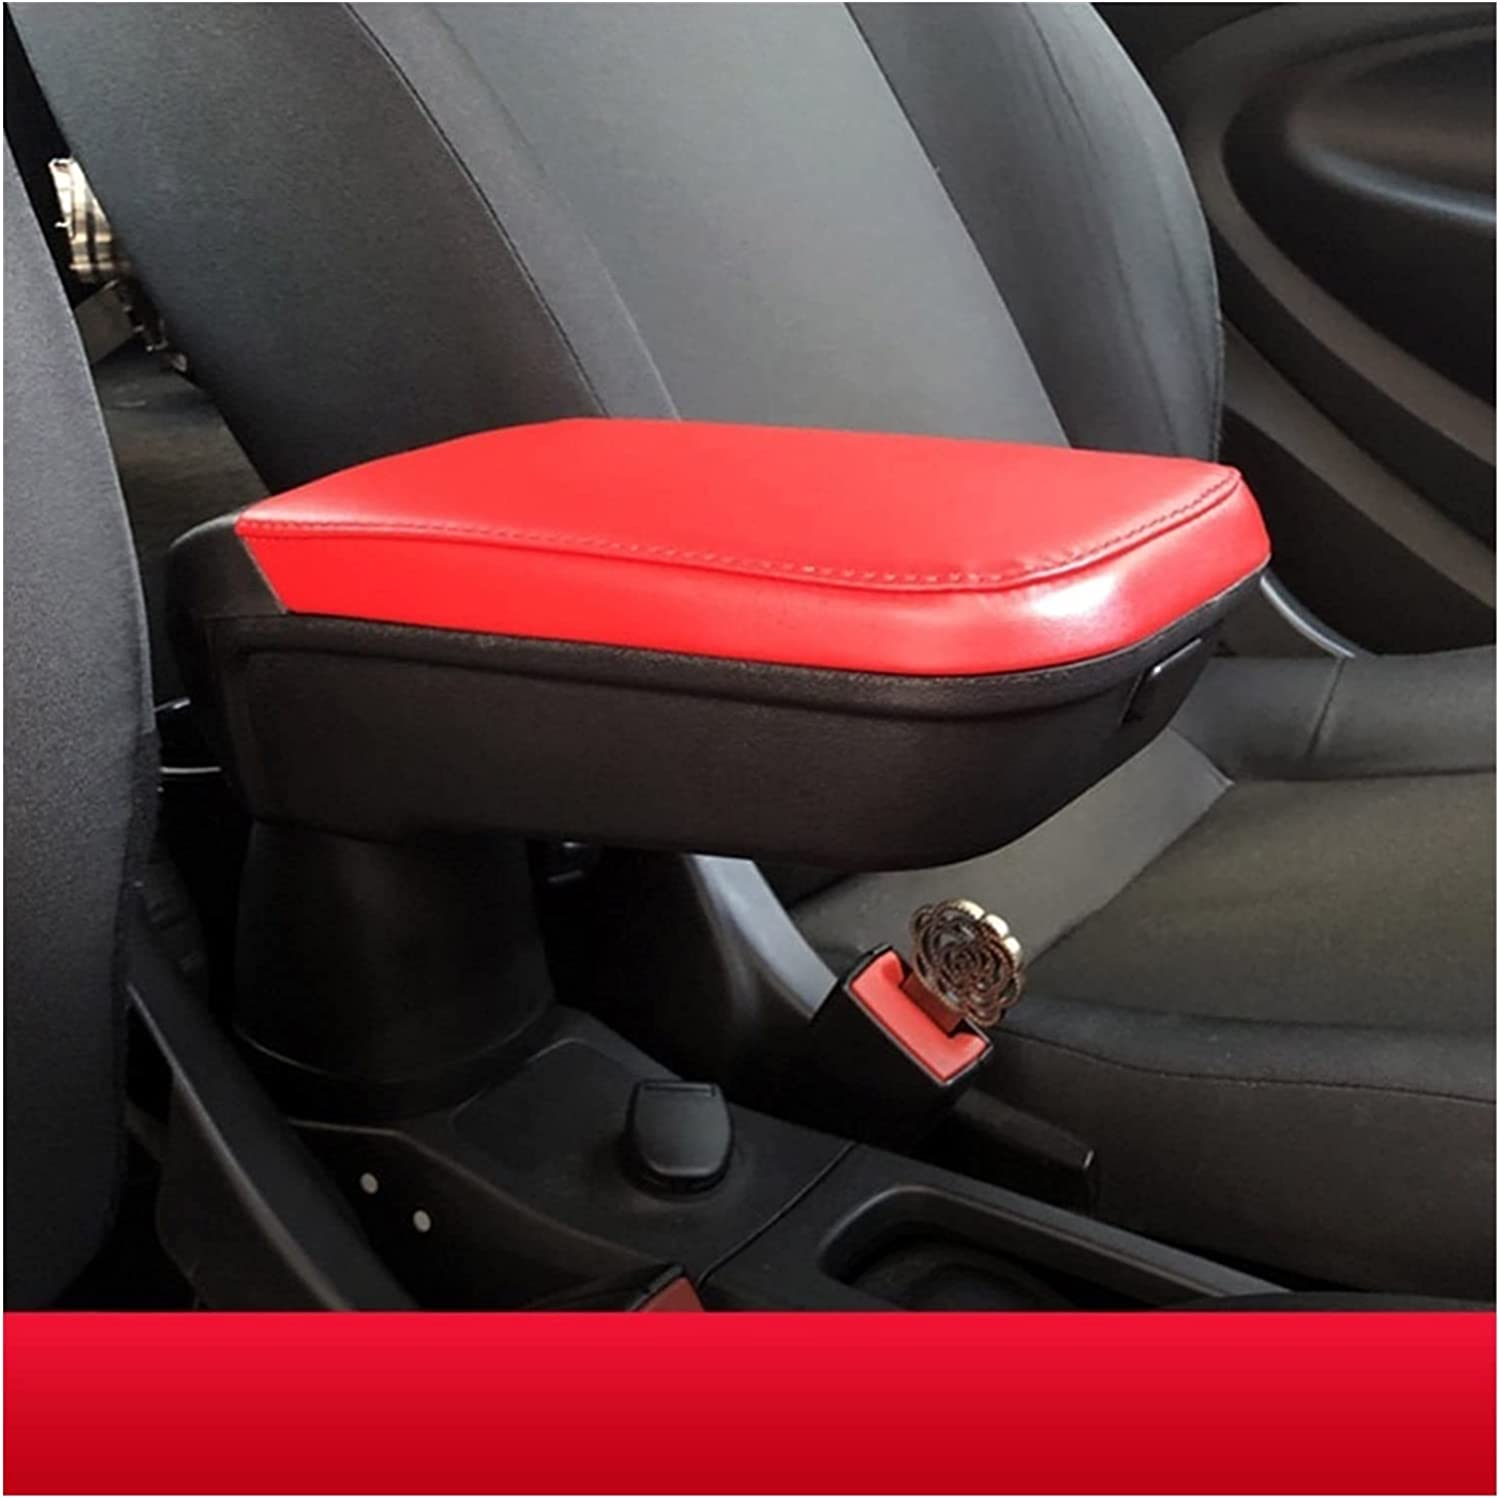 XQMY Automotive Interior Accessories Leather Armrest Box with Max 44% OFF Weekly update Cu